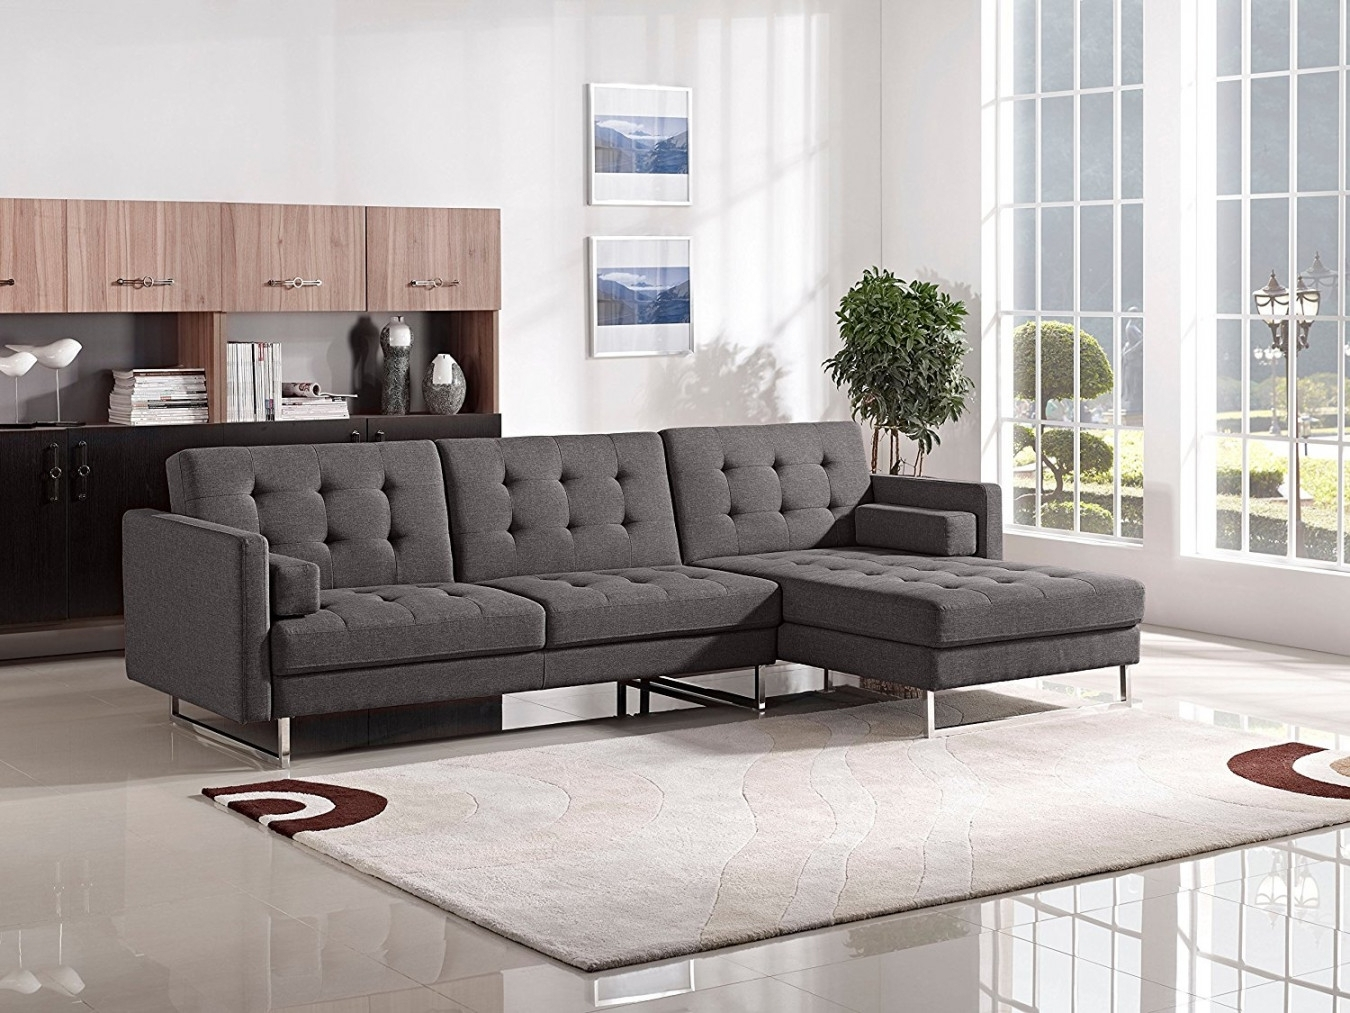 Sofa : Tufted Sectional Sofa Queen Sleeper Sofa' Loveseat Sofa Bed Throughout Tufted Sectional Sofas (Image 8 of 10)